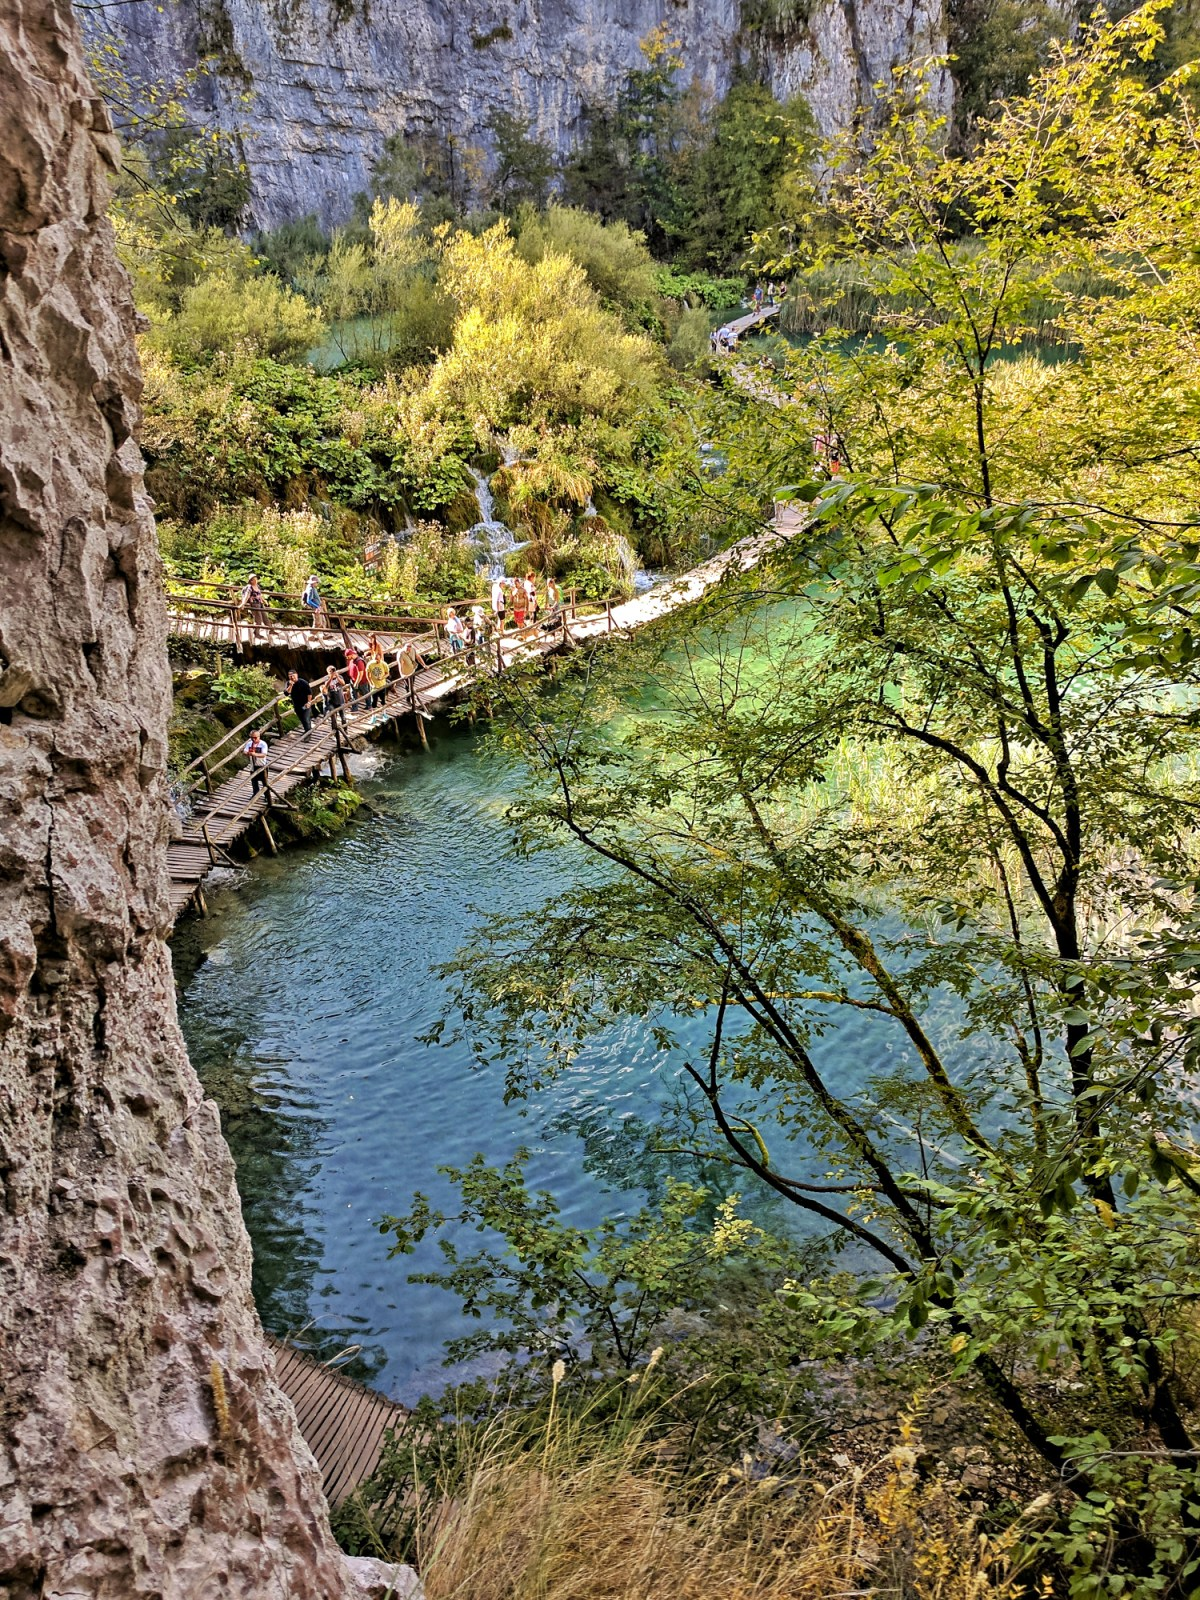 Europe's top natural attraction, Plitvice Lakes, walking paths below.